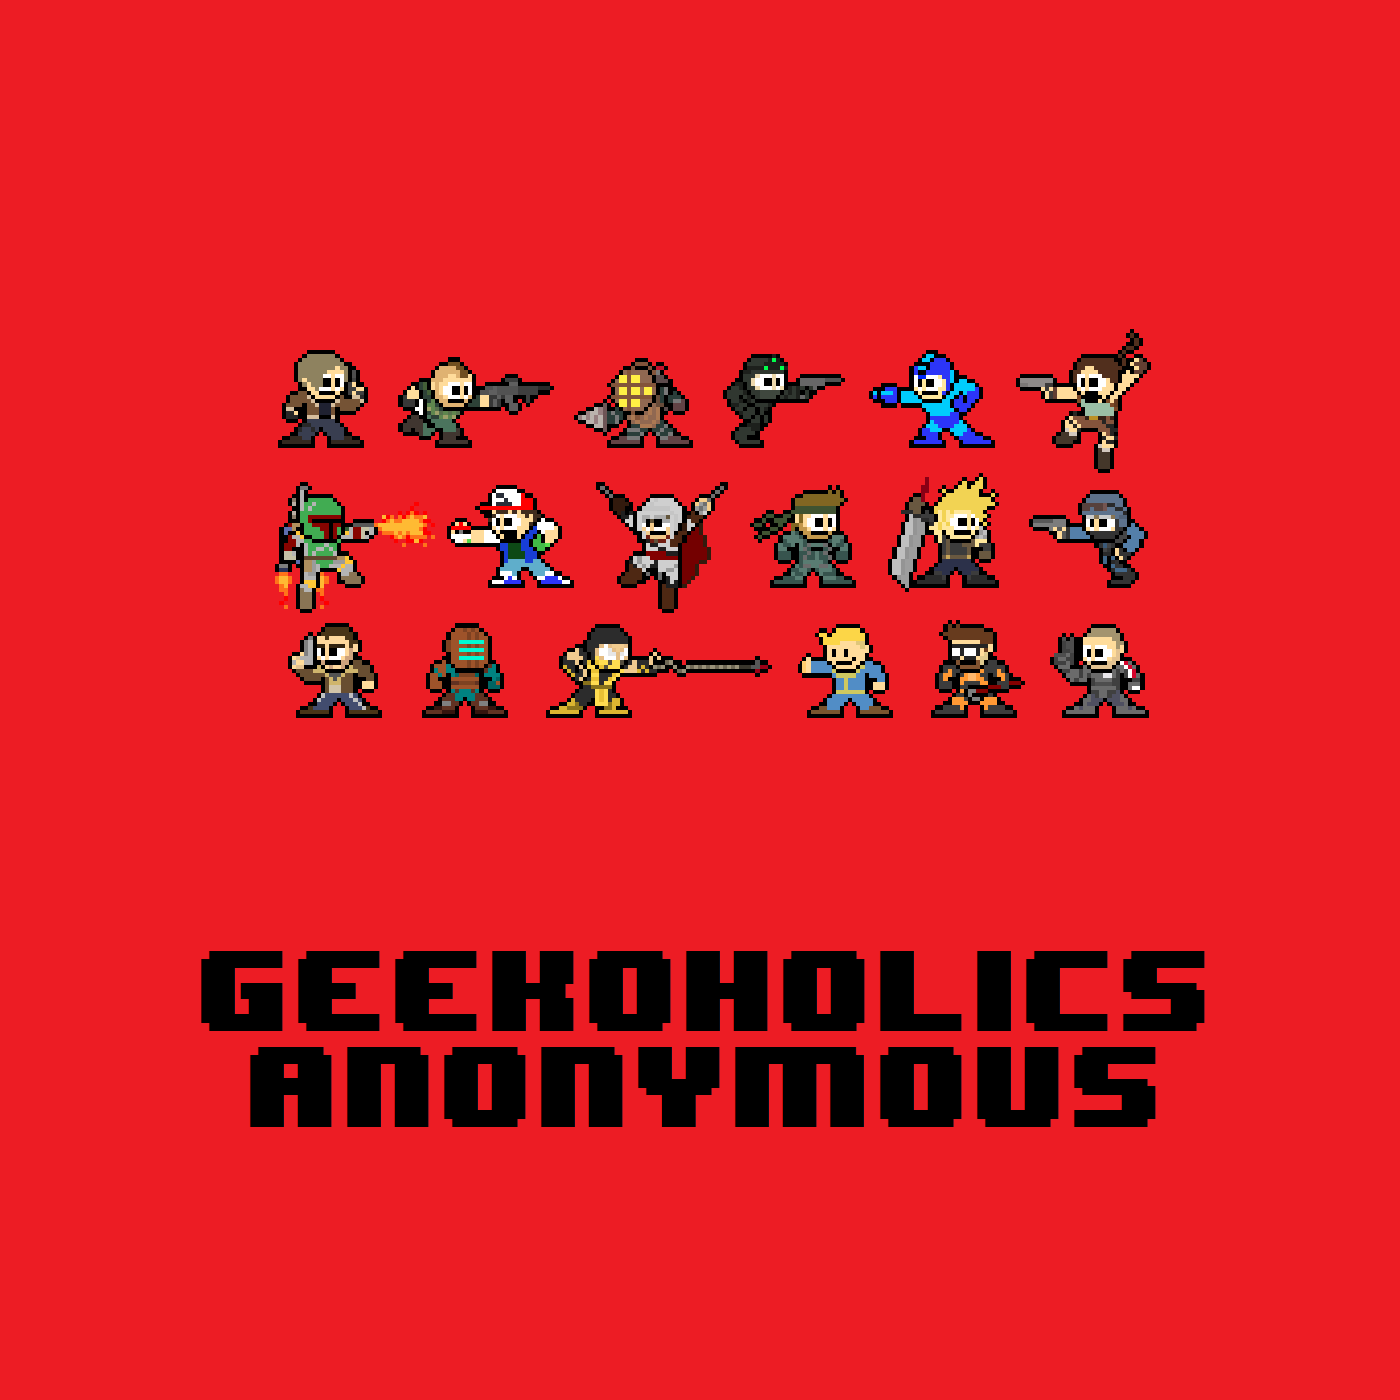 Far Cry 6, Midnight Mass, Windows 11 and more - Geekoholics Anonymous Podcast 326 show art